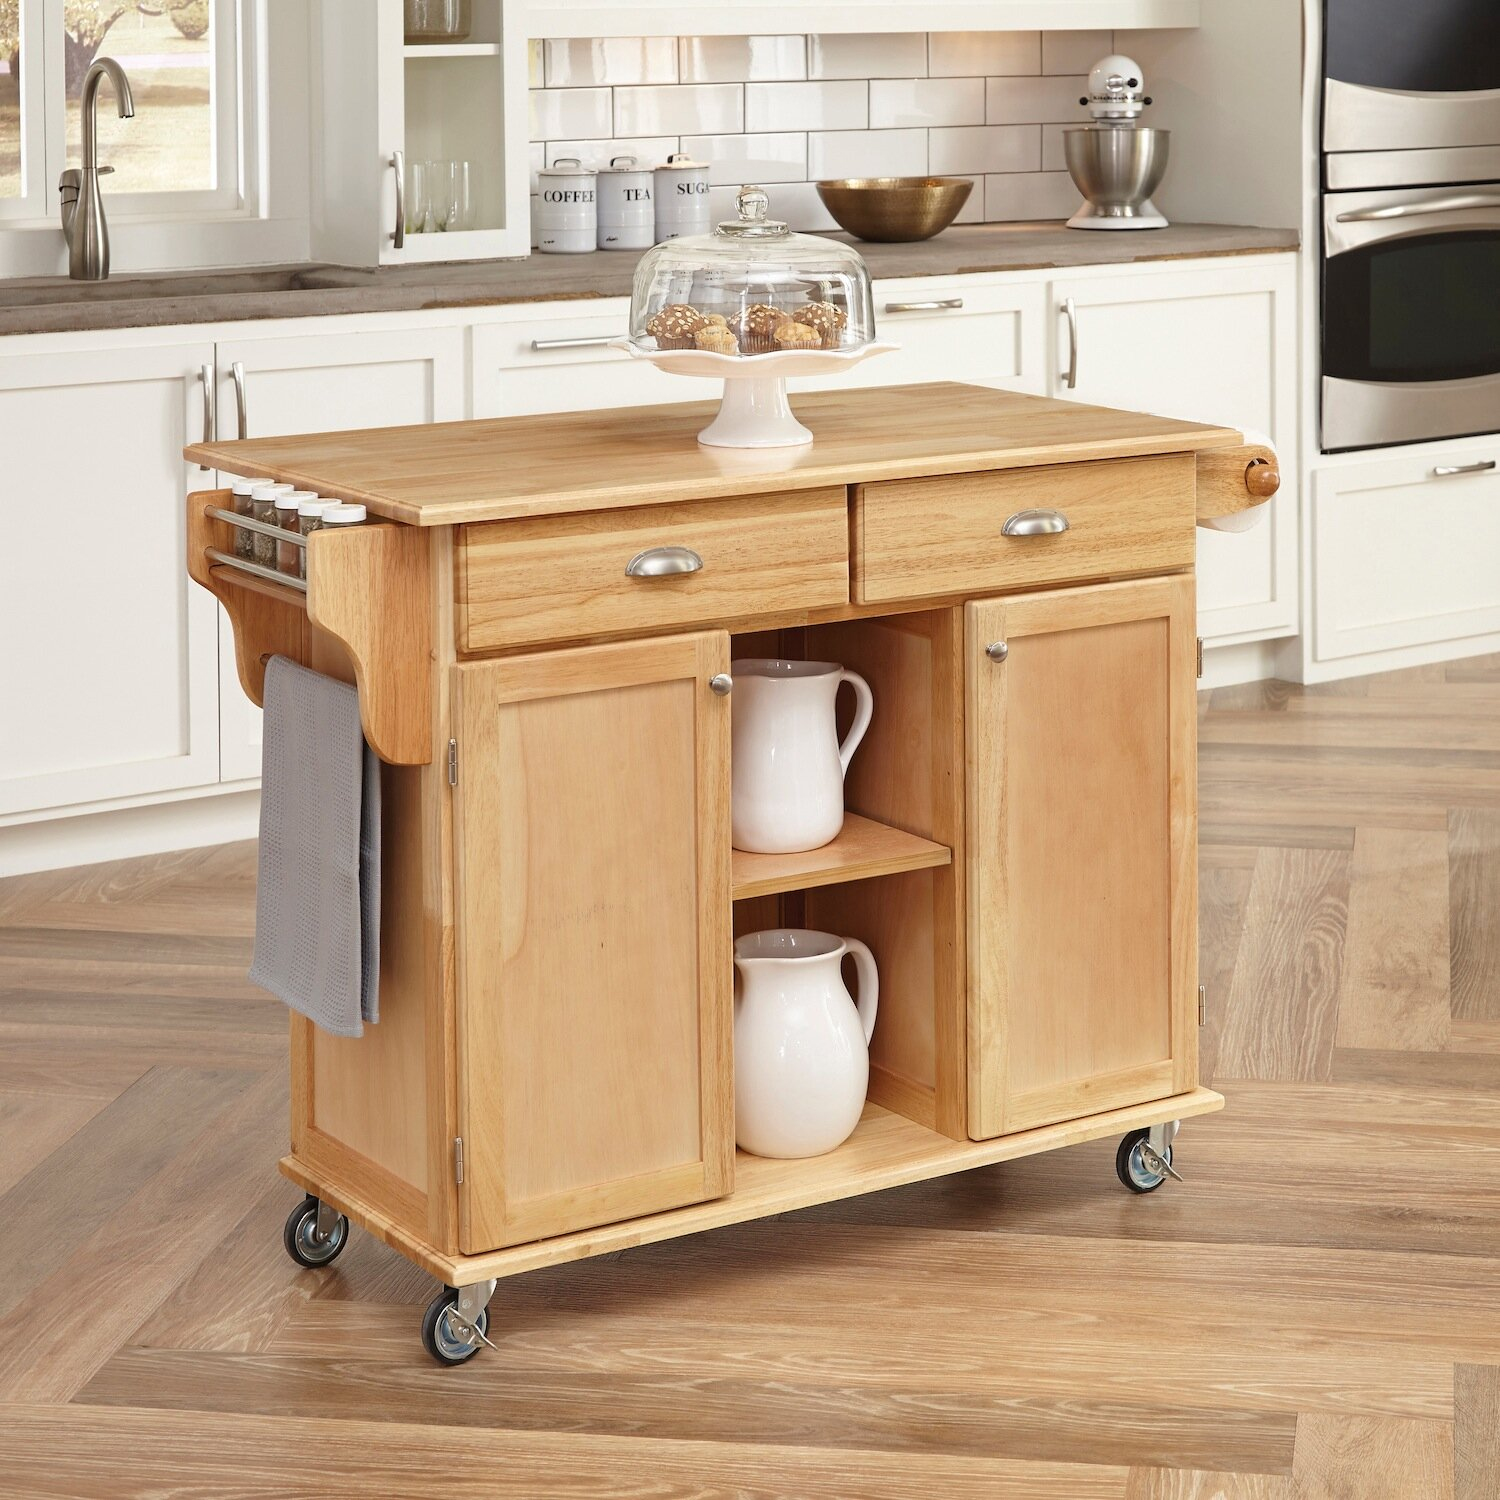 August Grove Lili Kitchen Island With Wood Top amp Reviews